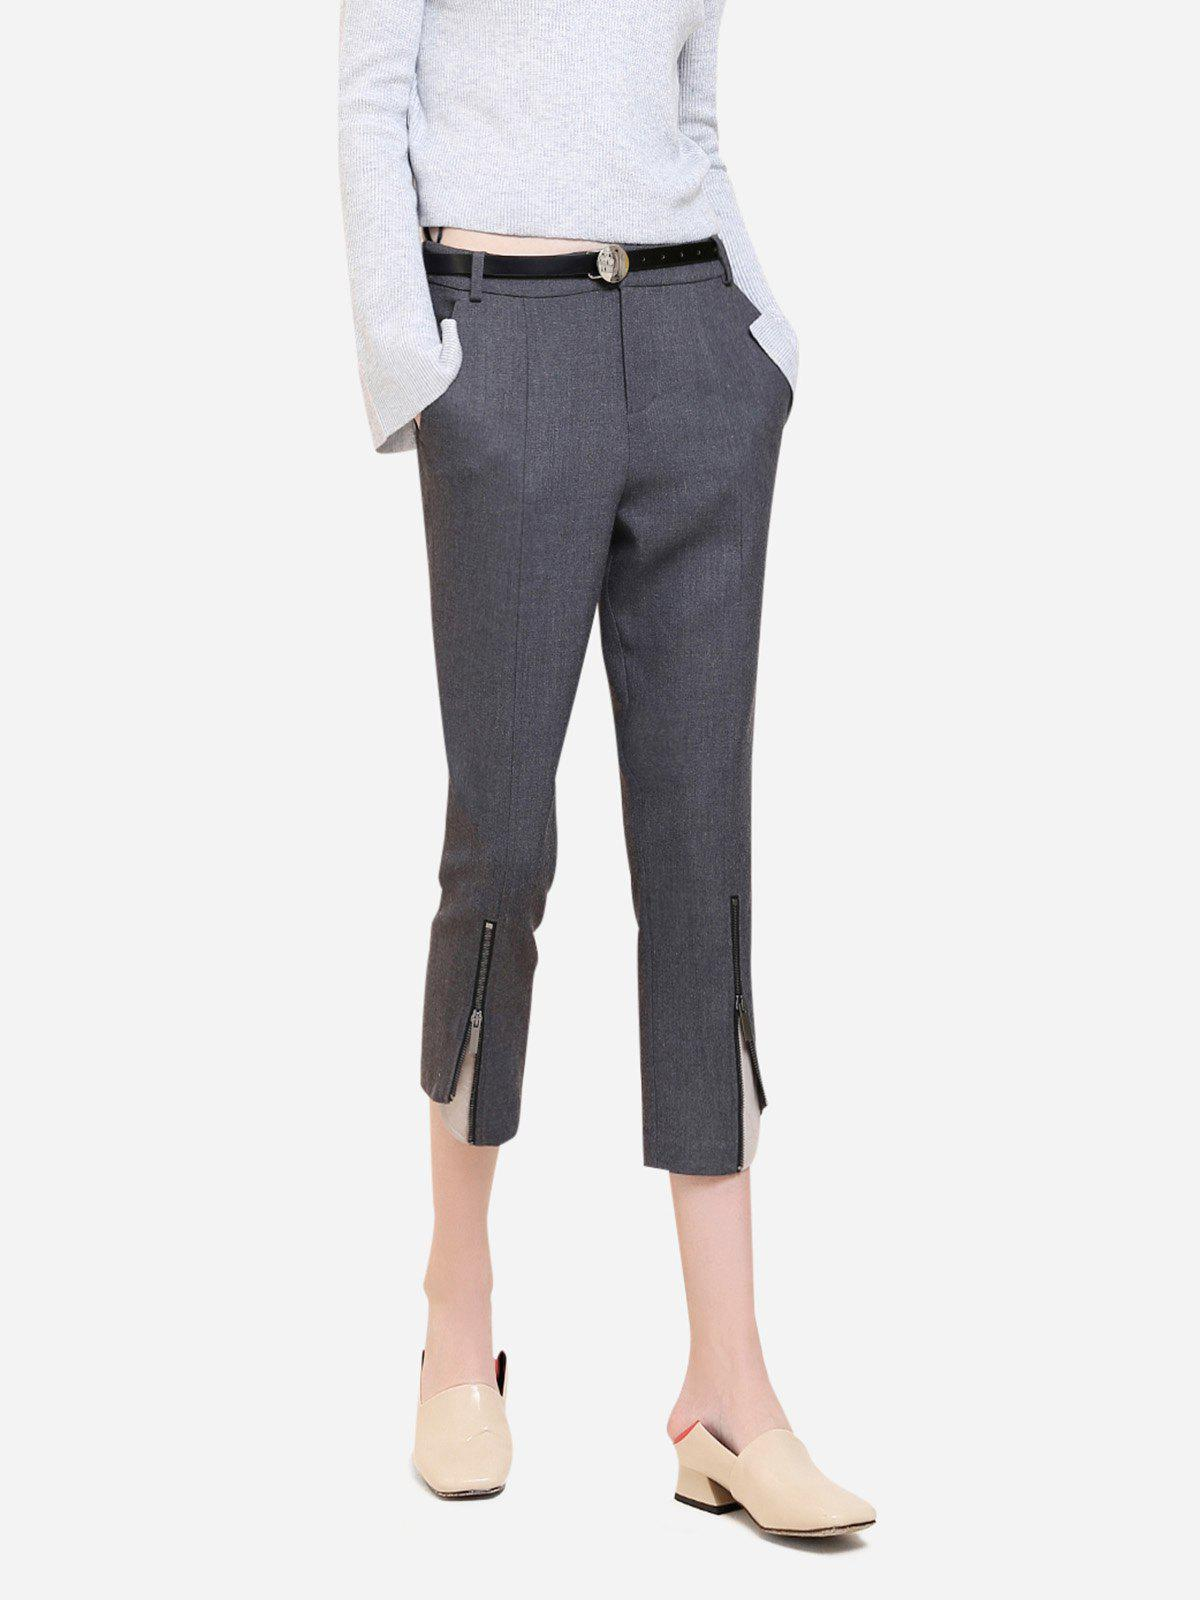 ZAN.STYLE Side Pocket Cropped Pants - GRAY 2XL